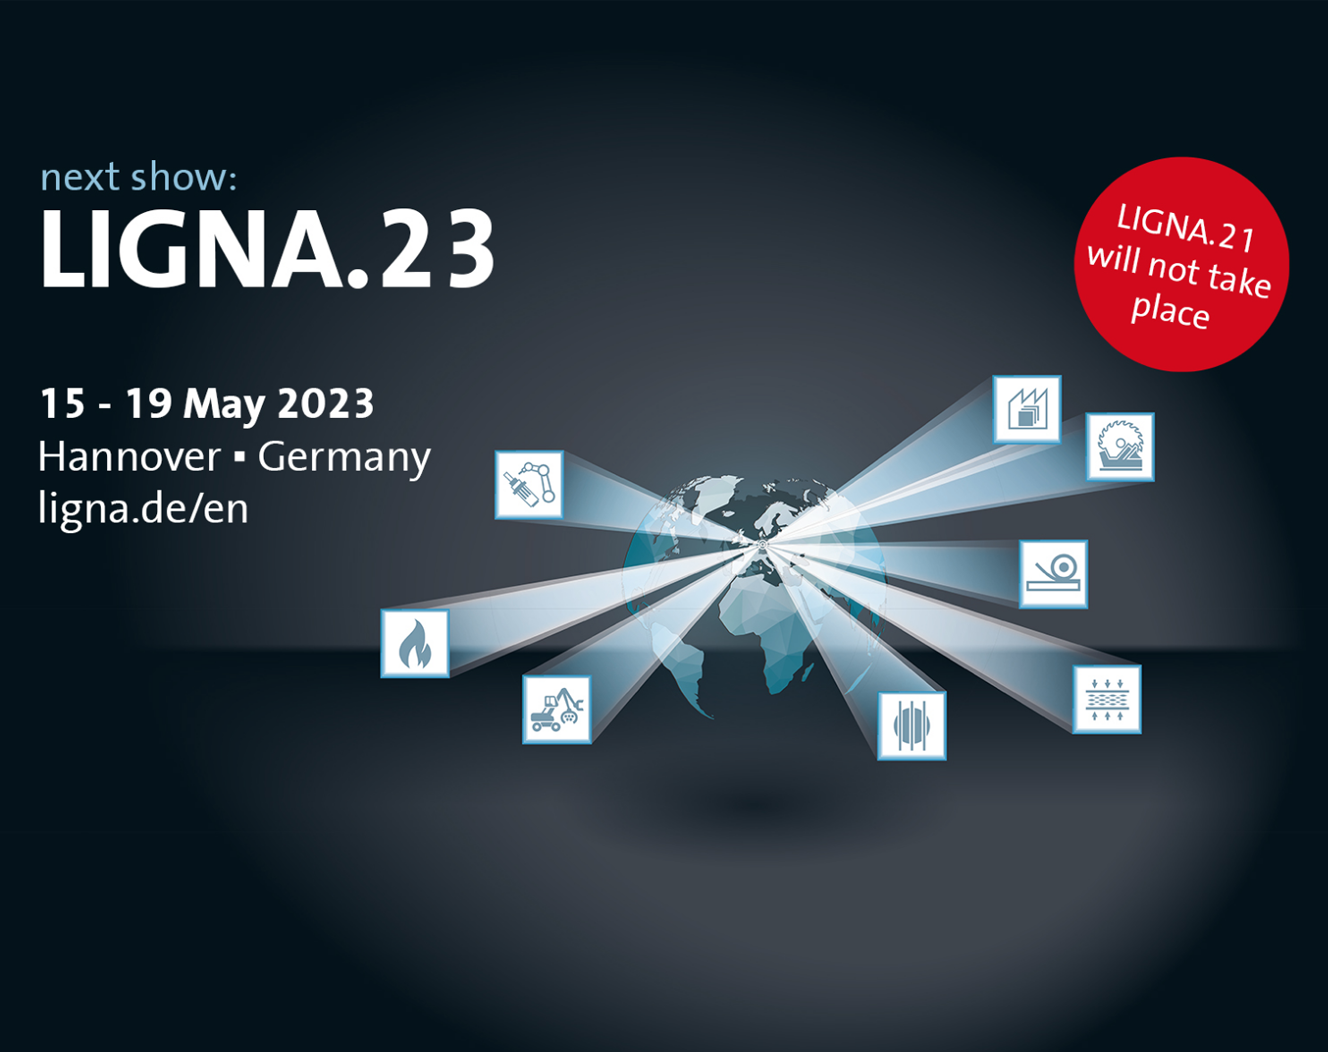 Next regular LIGNA in May 2023 – LIGNA.21 will not take place